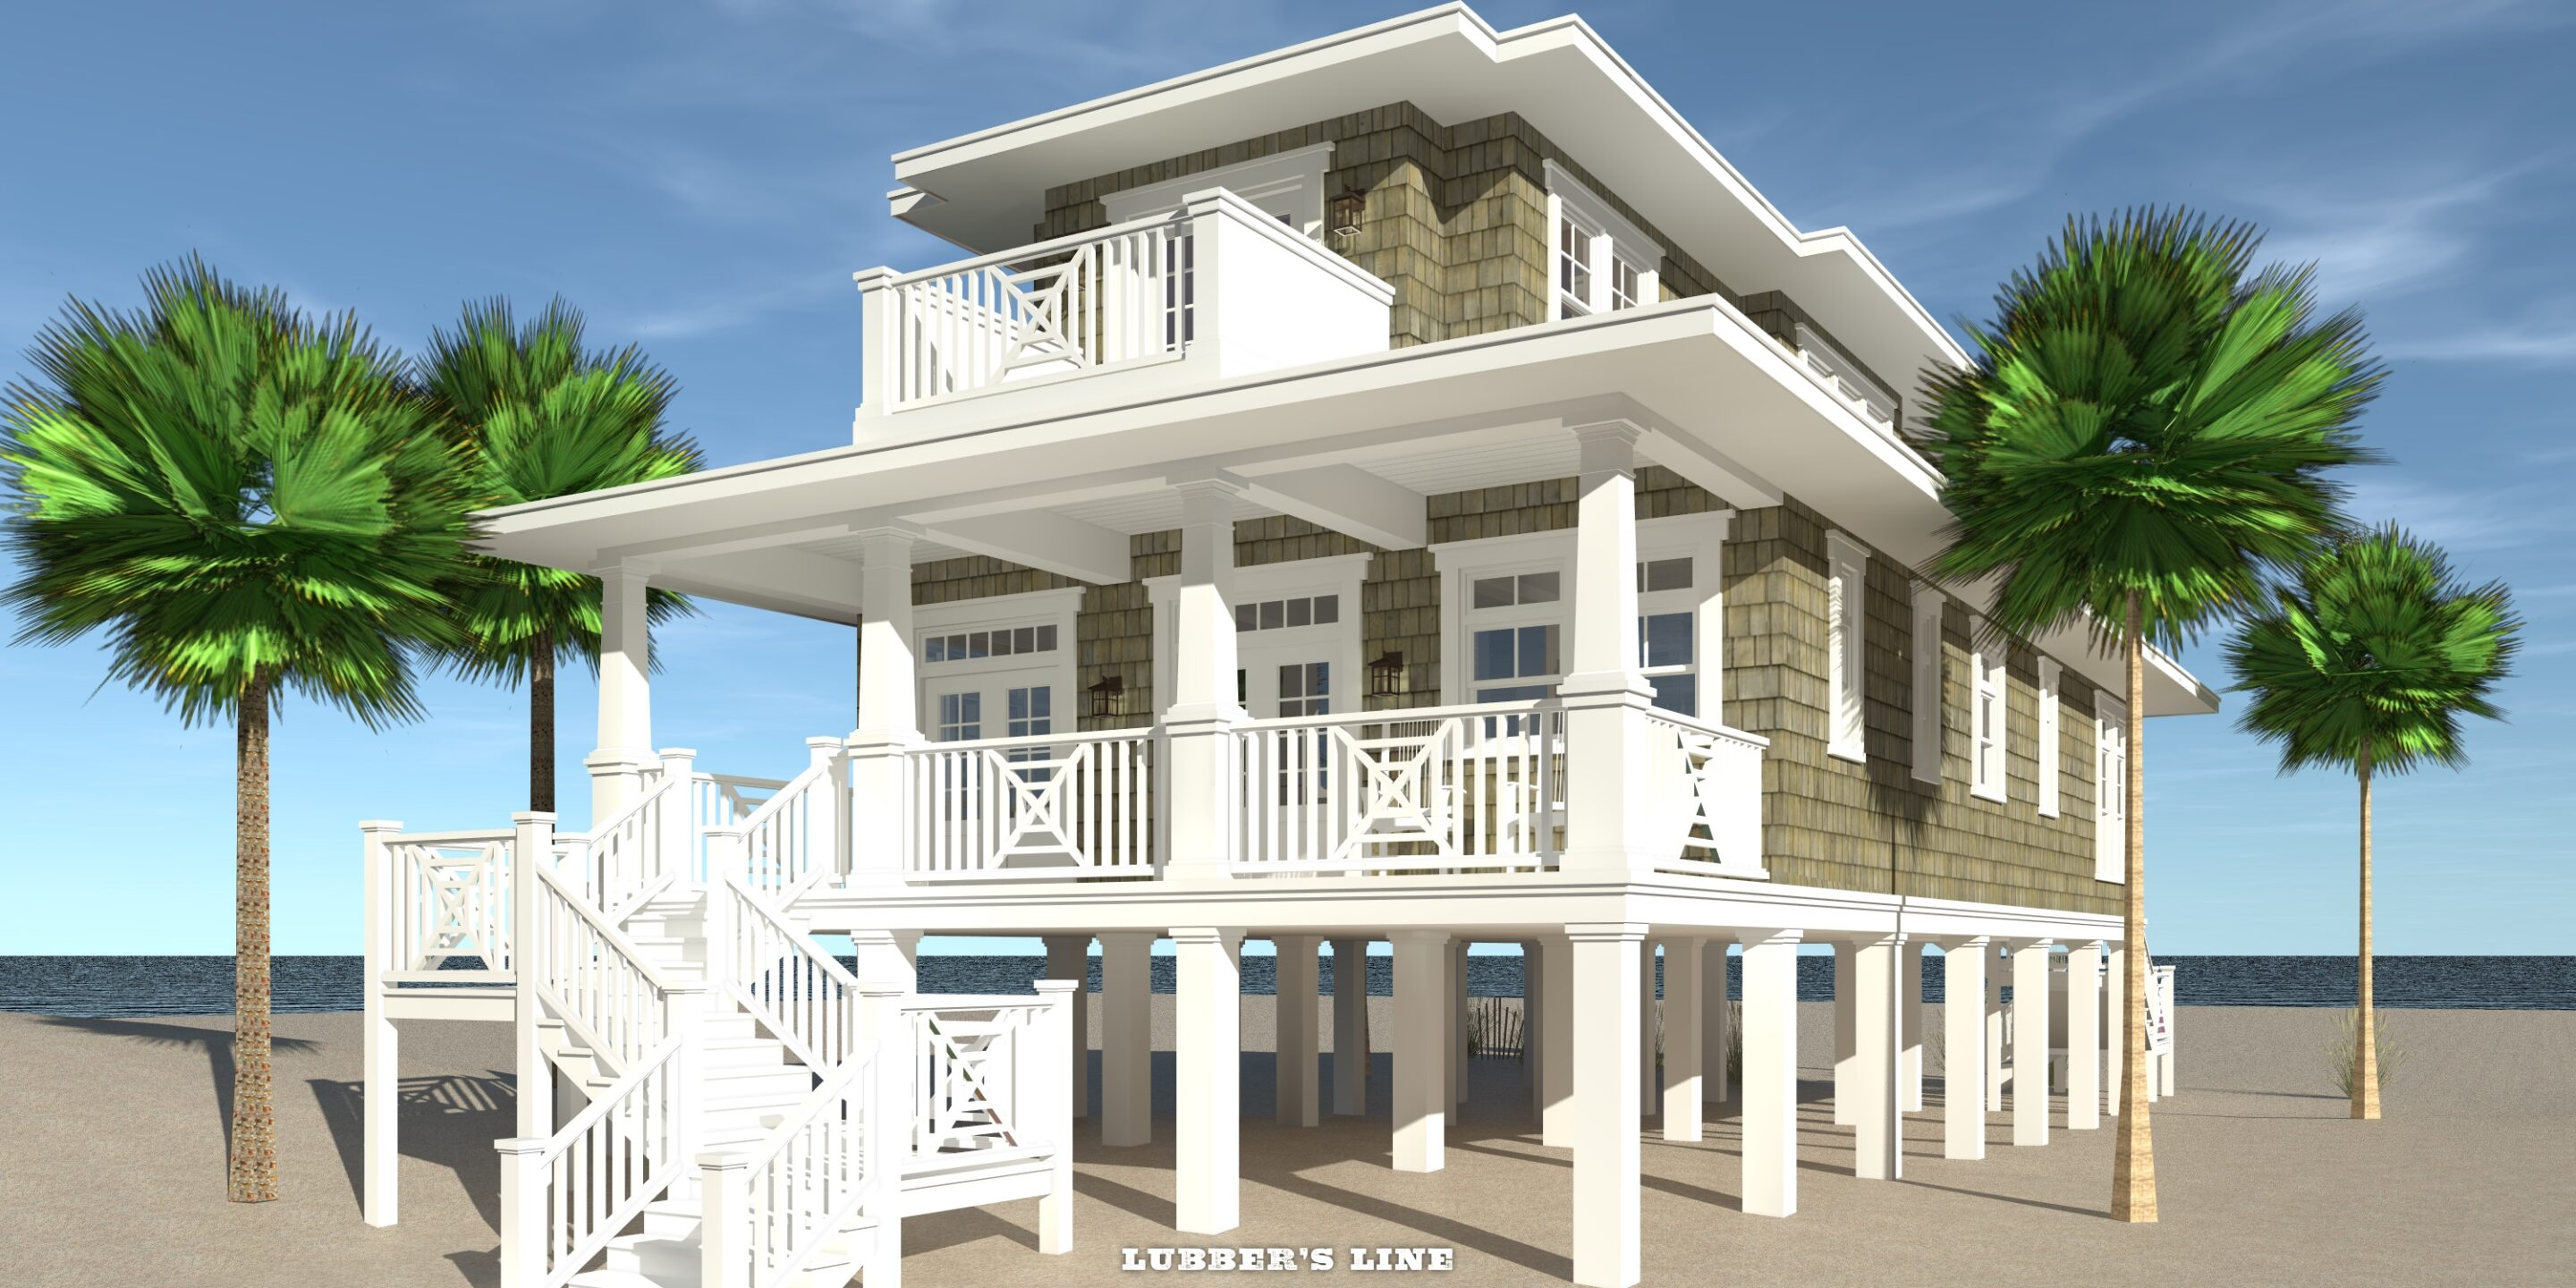 Lubber's Line House Plan by Tyree House Plans